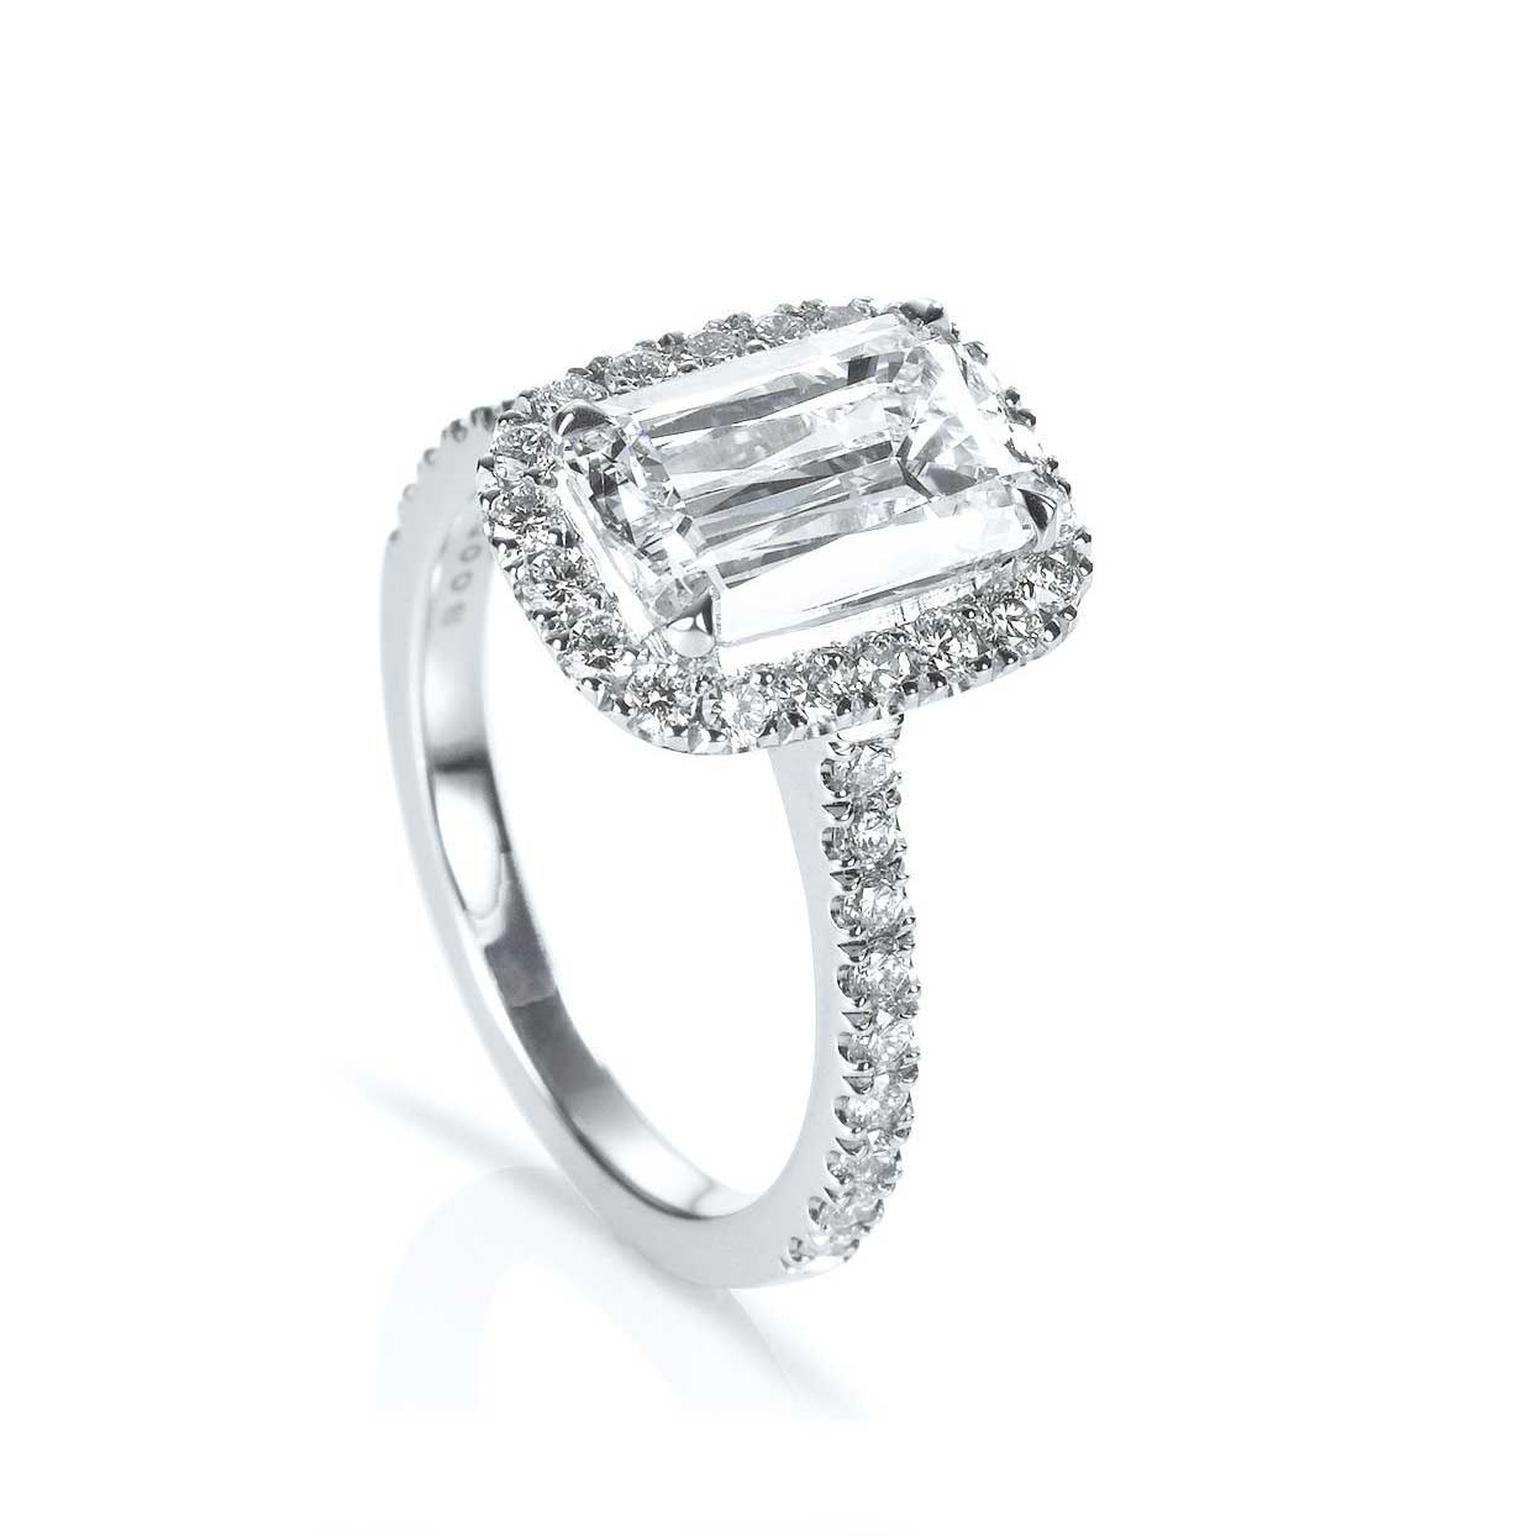 Boodles New Vintage Ashoka diamond ring